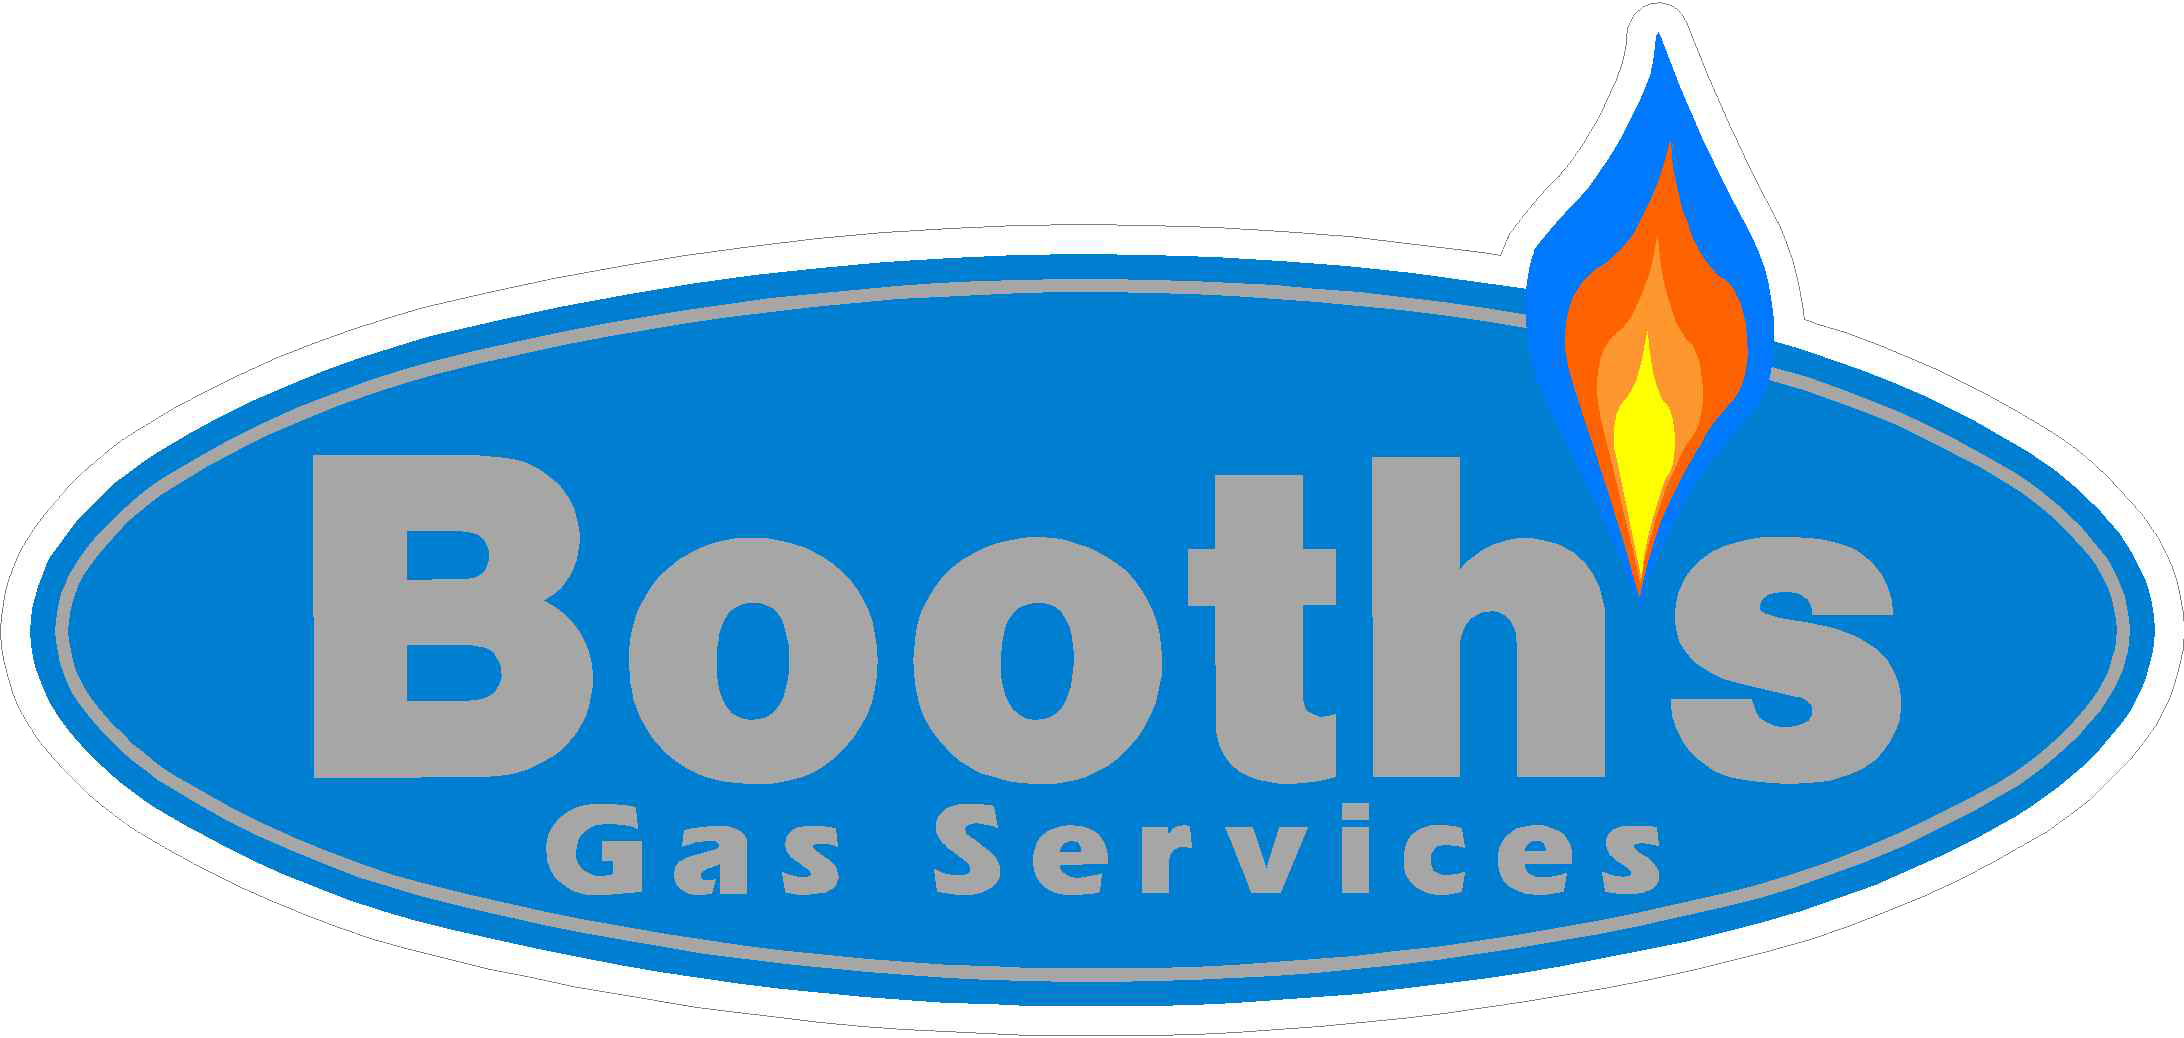 Booths - Gas Services